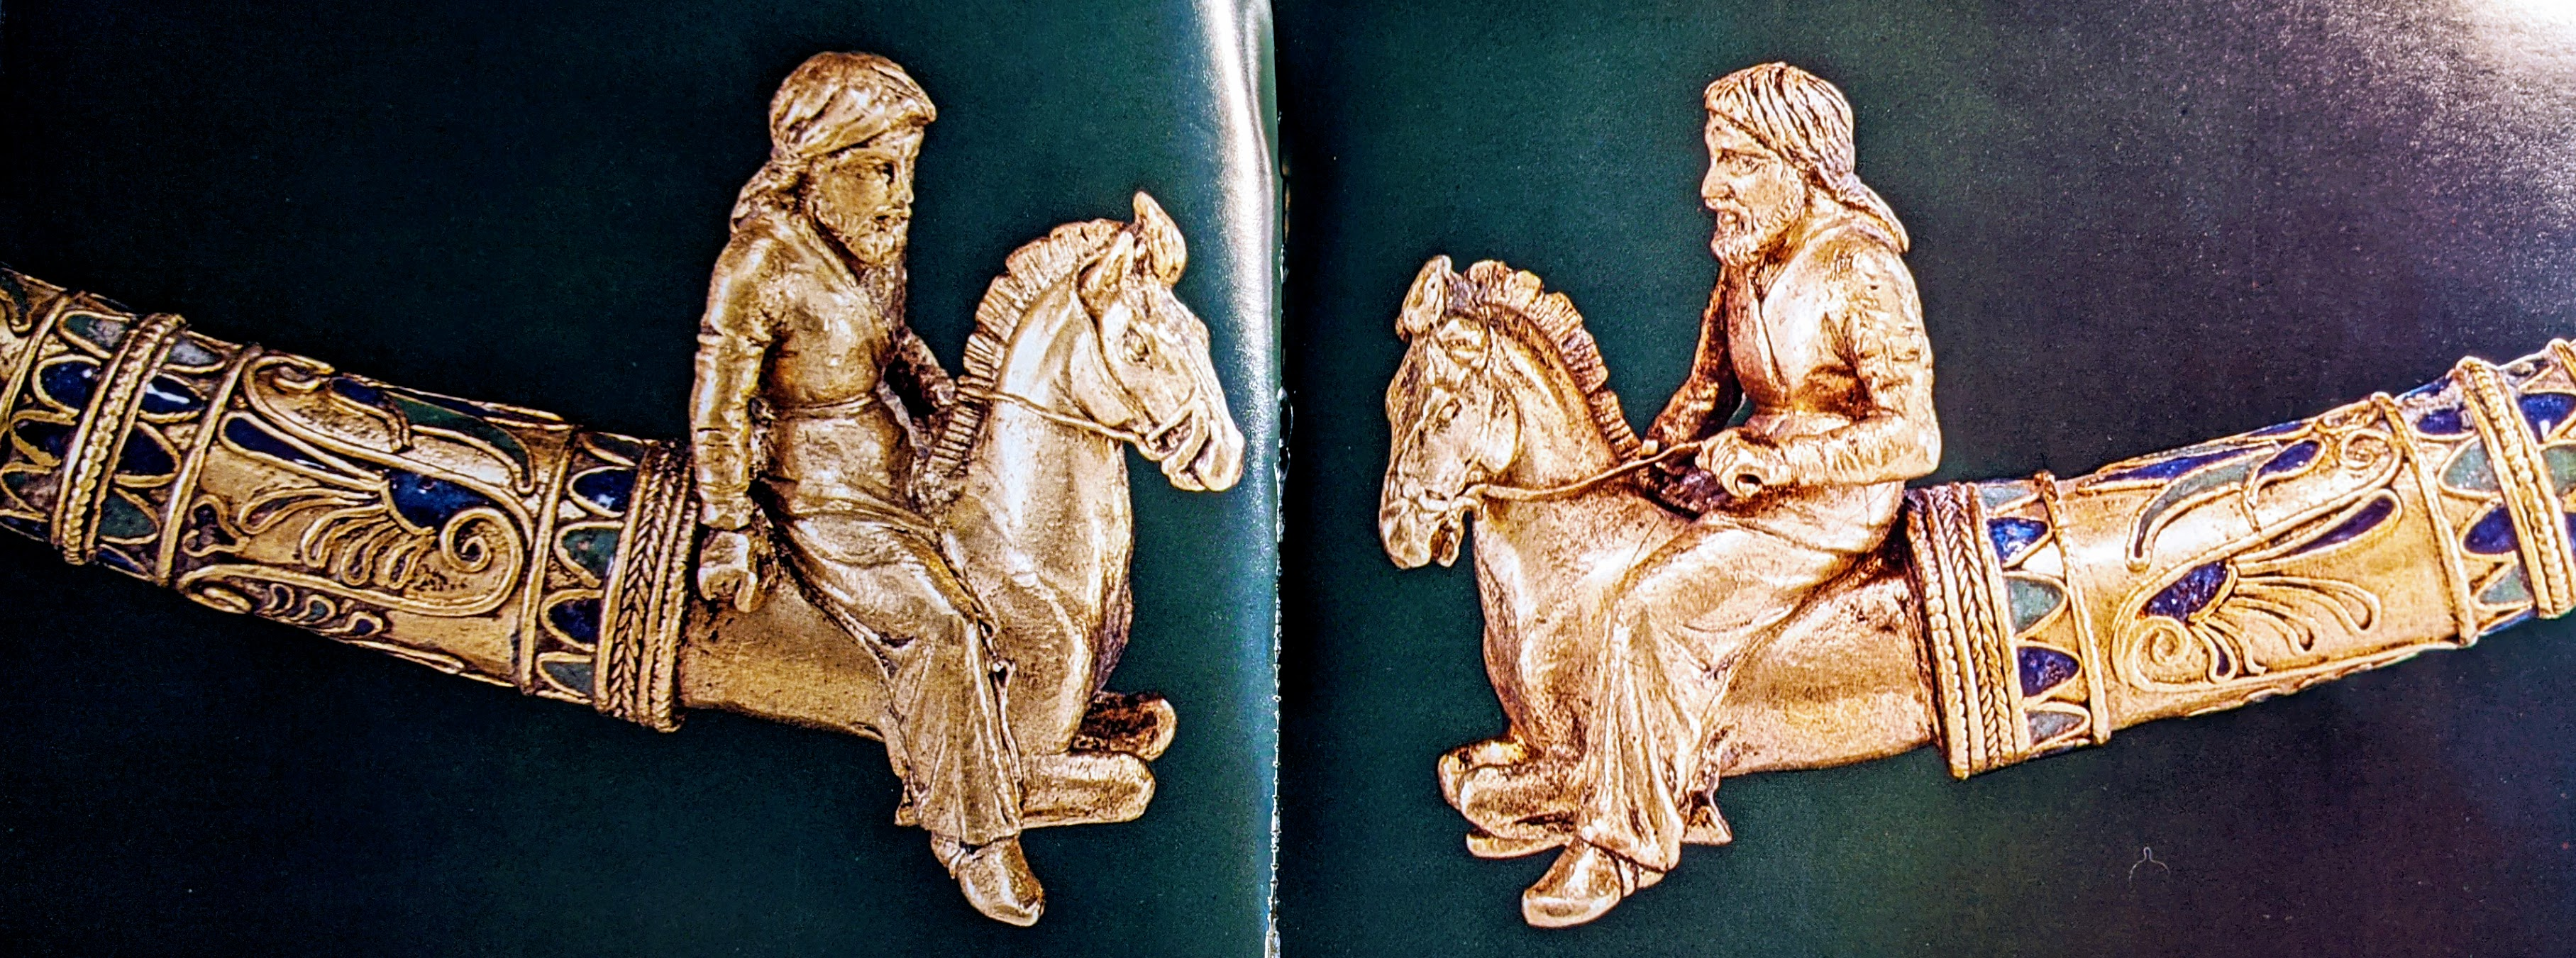 Torque with horse riders finials